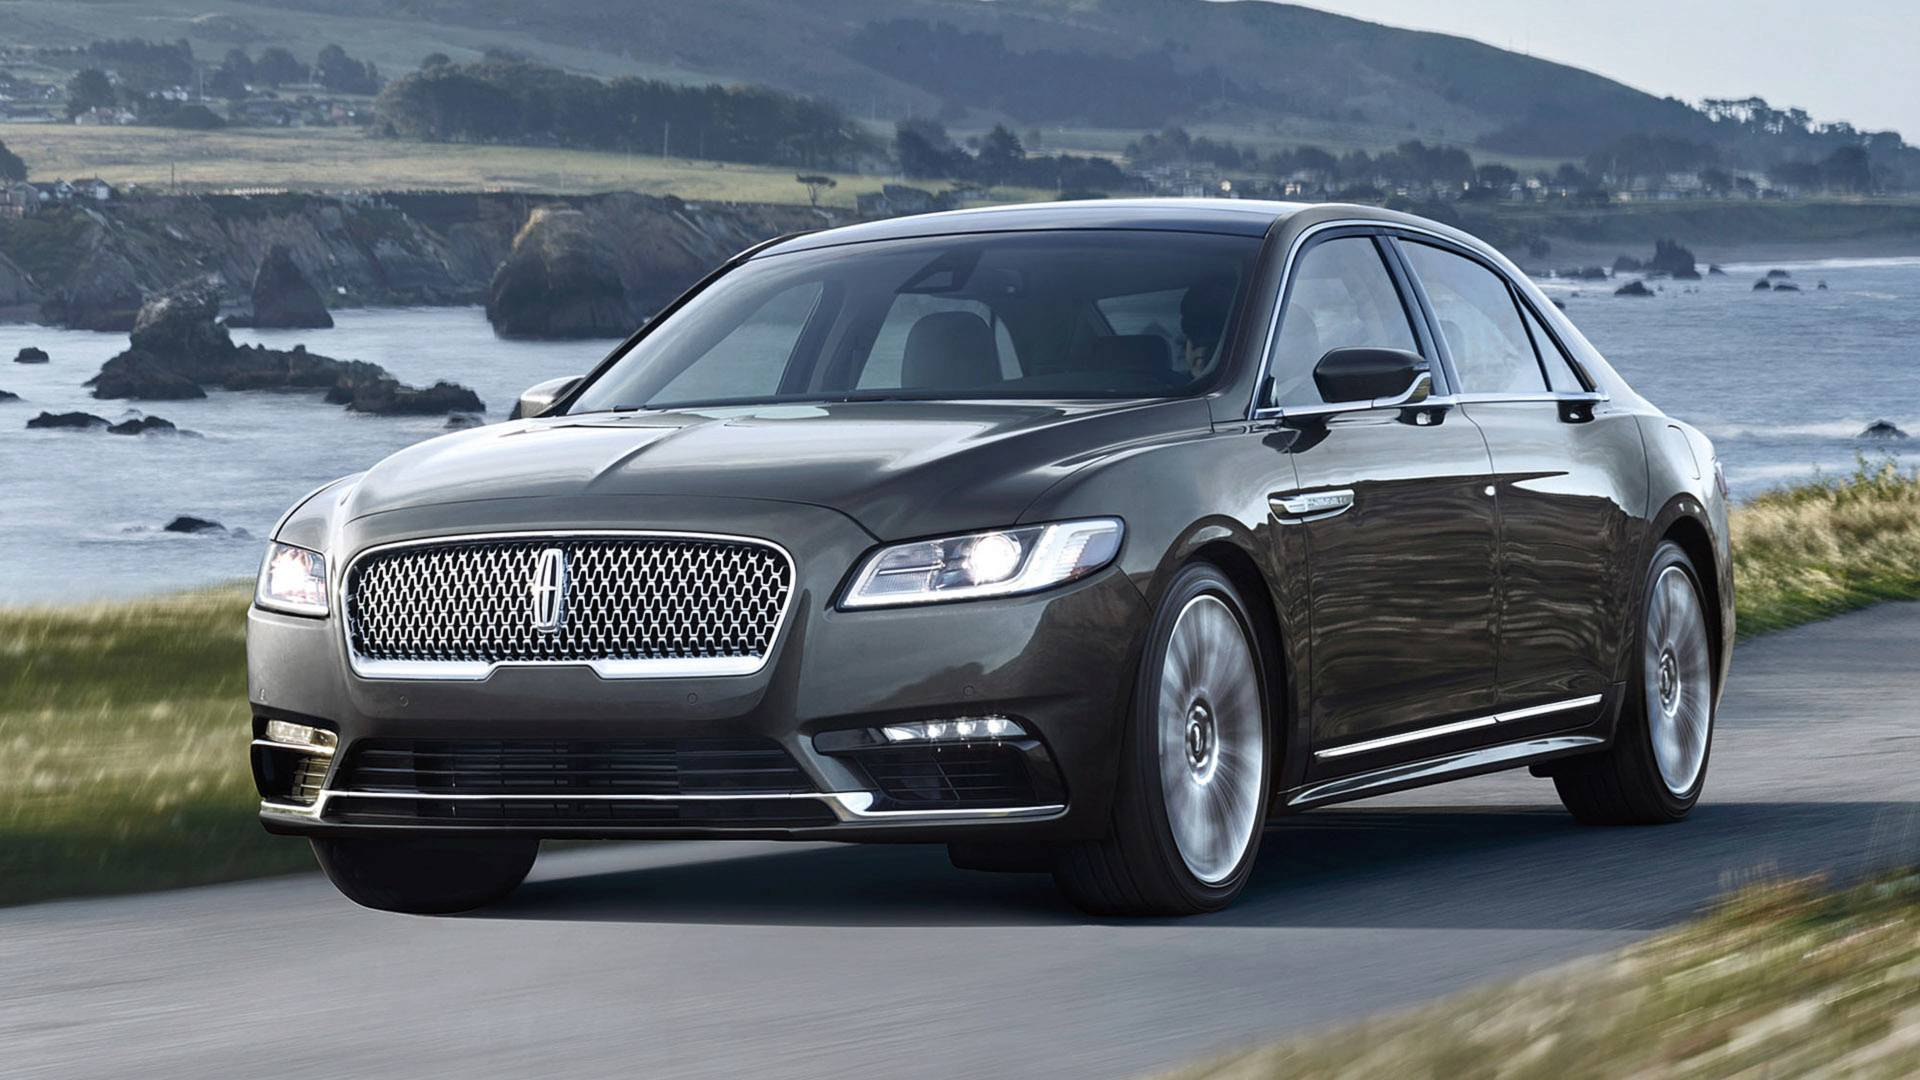 95 All New 2020 Lincoln MKZ Images